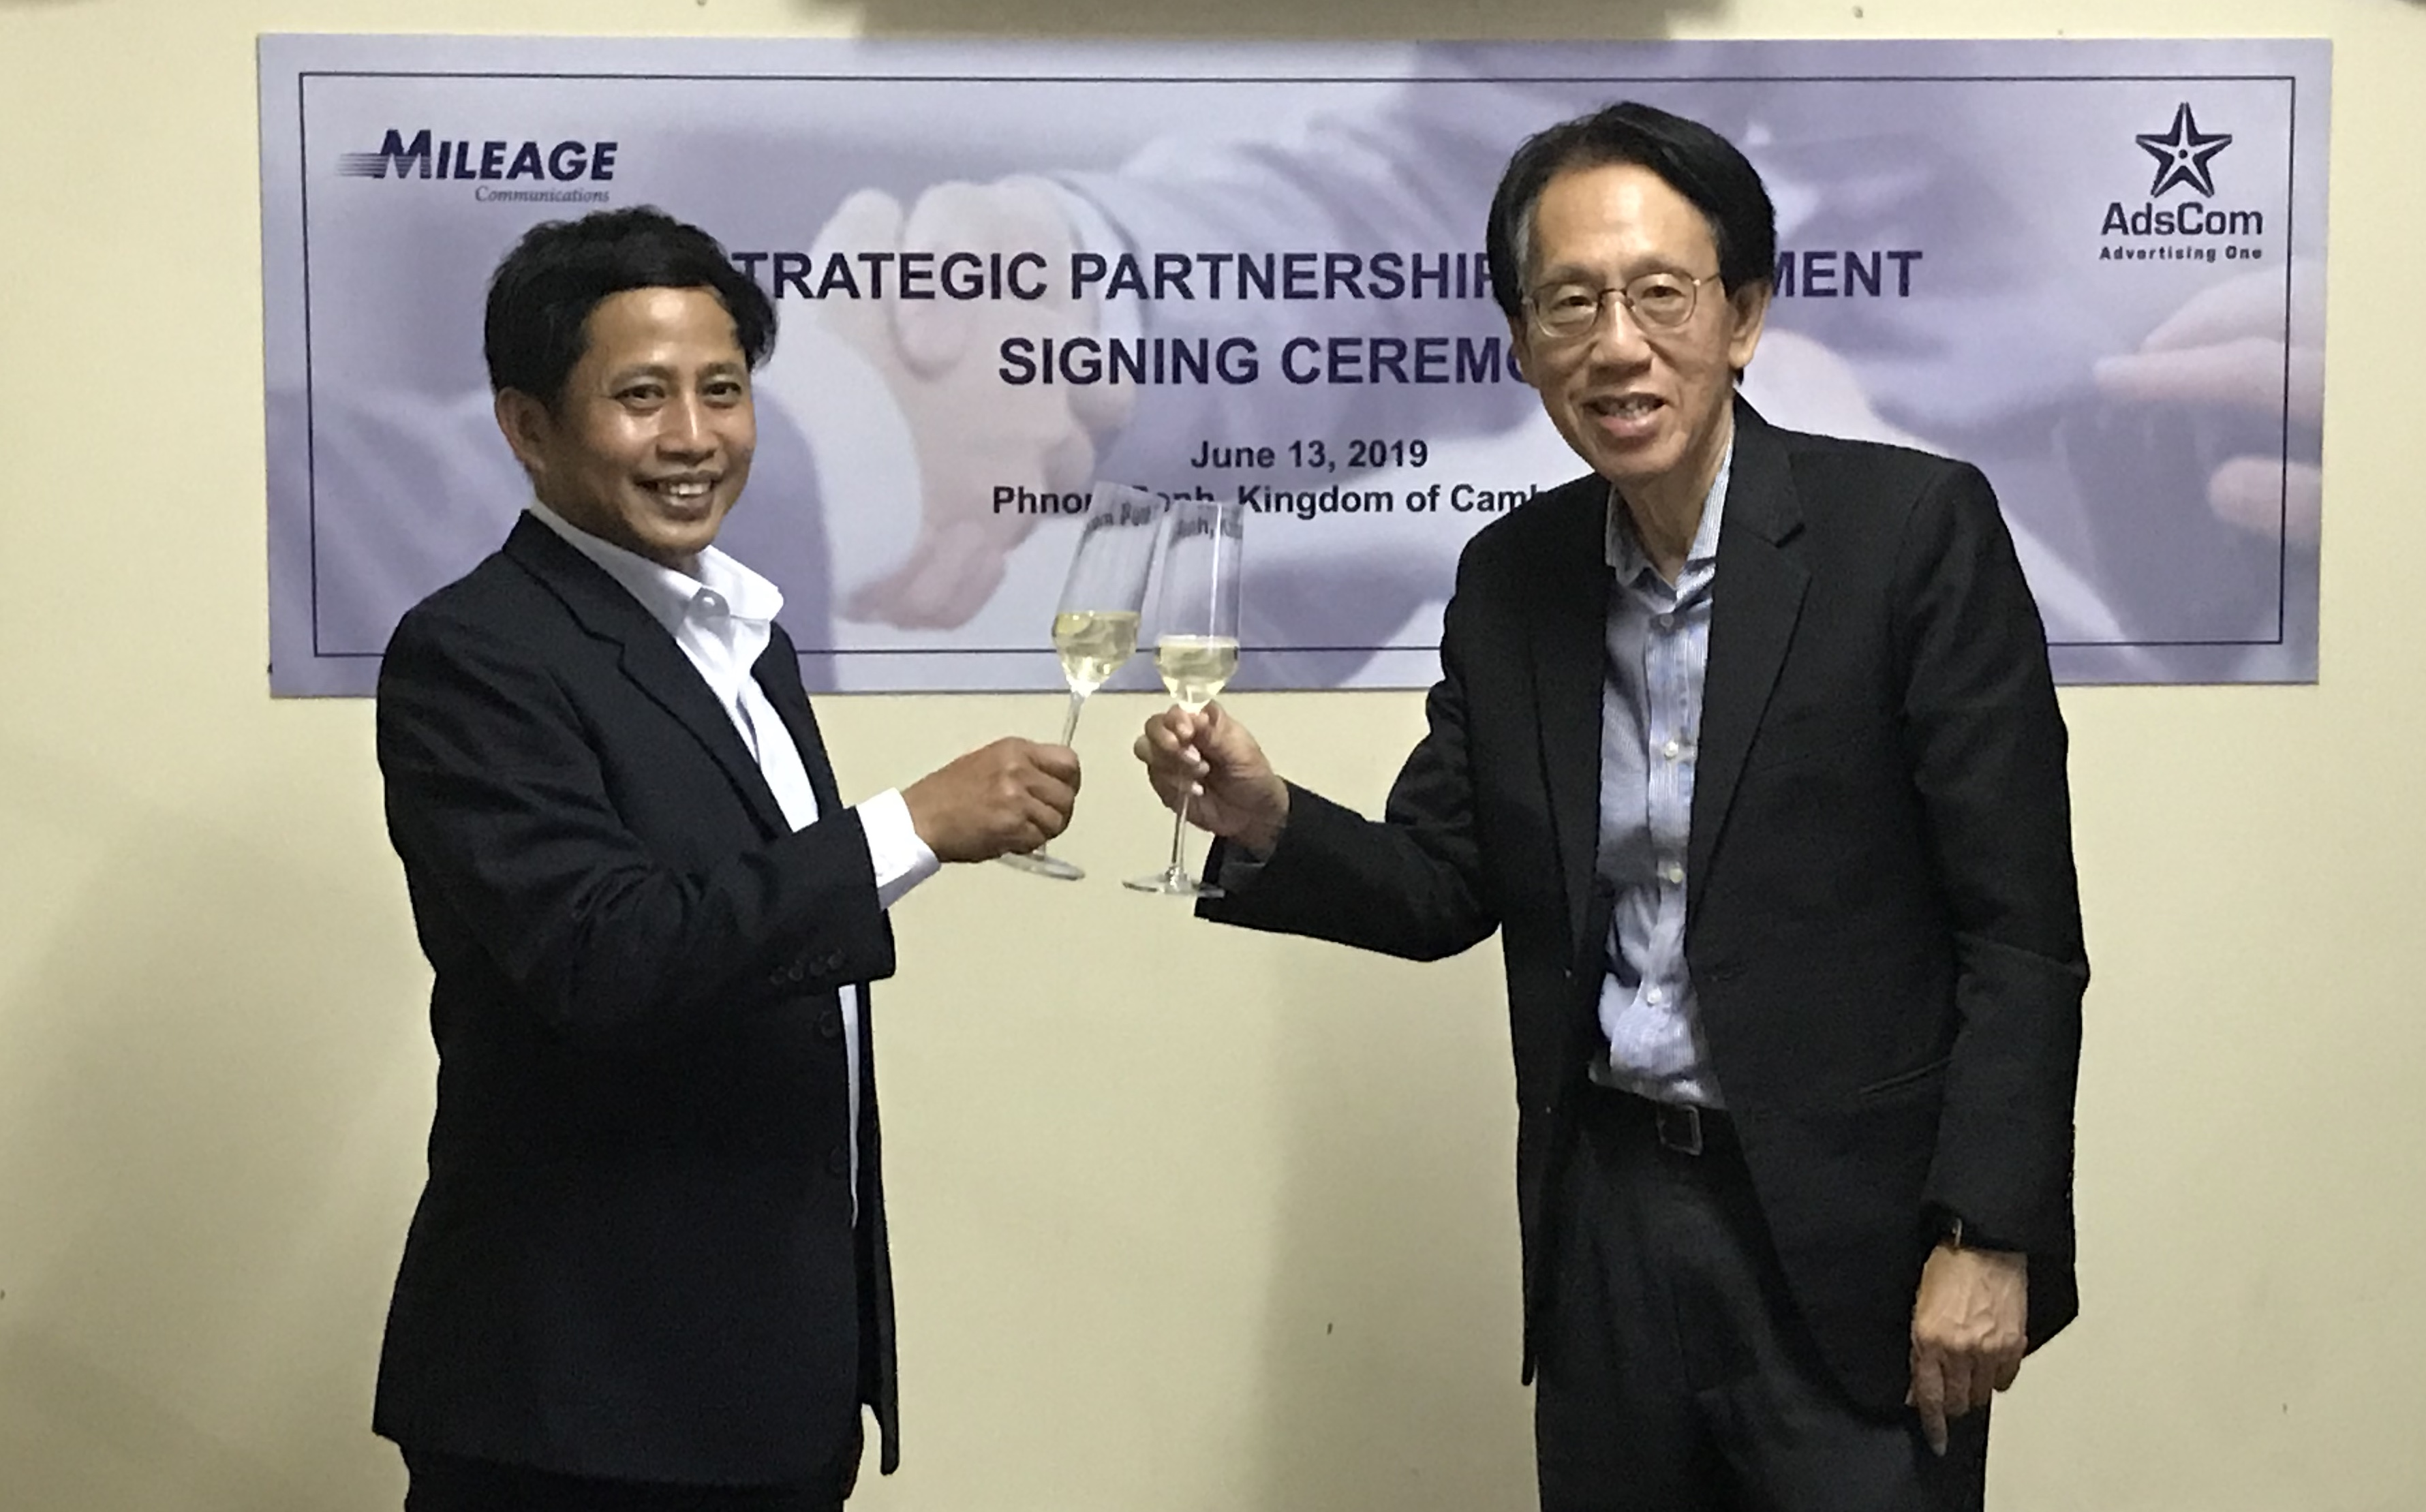 Mileage Communications Group Signs Strategic Partnership Agreement With AdsCom Of Cambodia